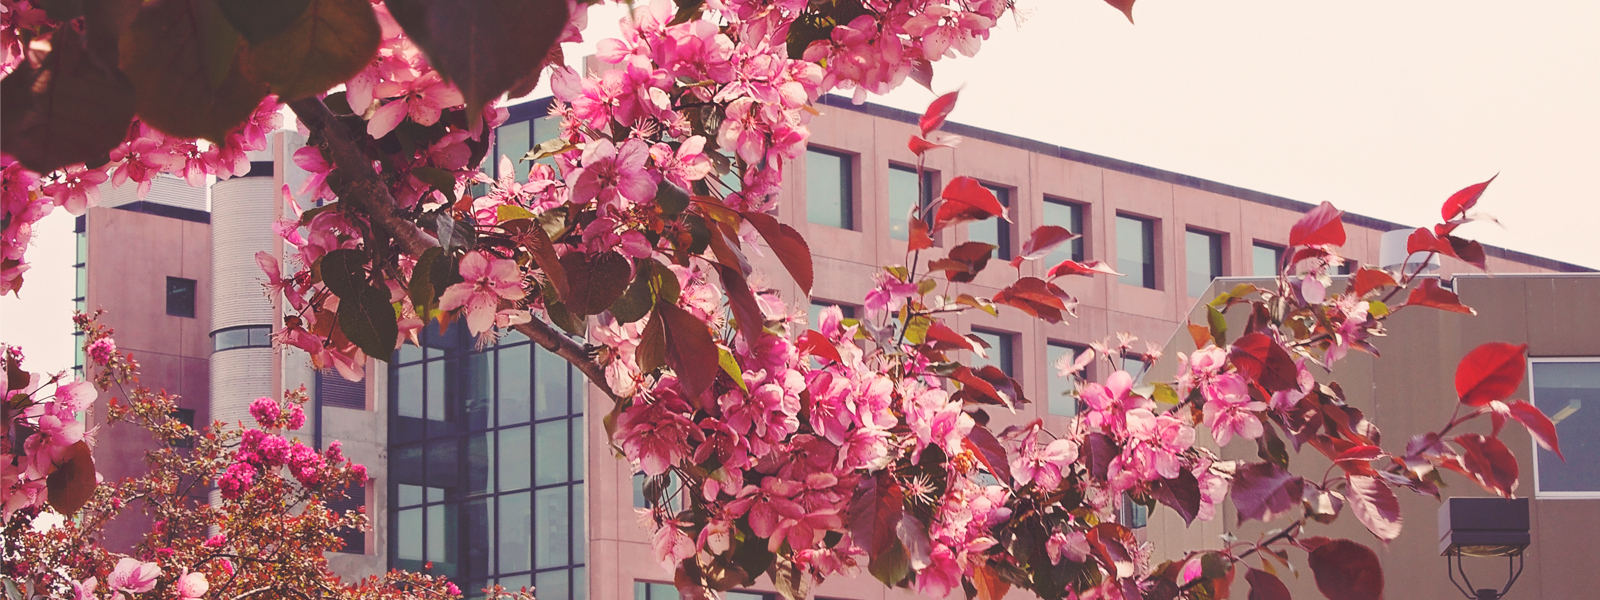 Lakehead Thunder Bay's ATAC building seen through our beautiful cherry blossoms